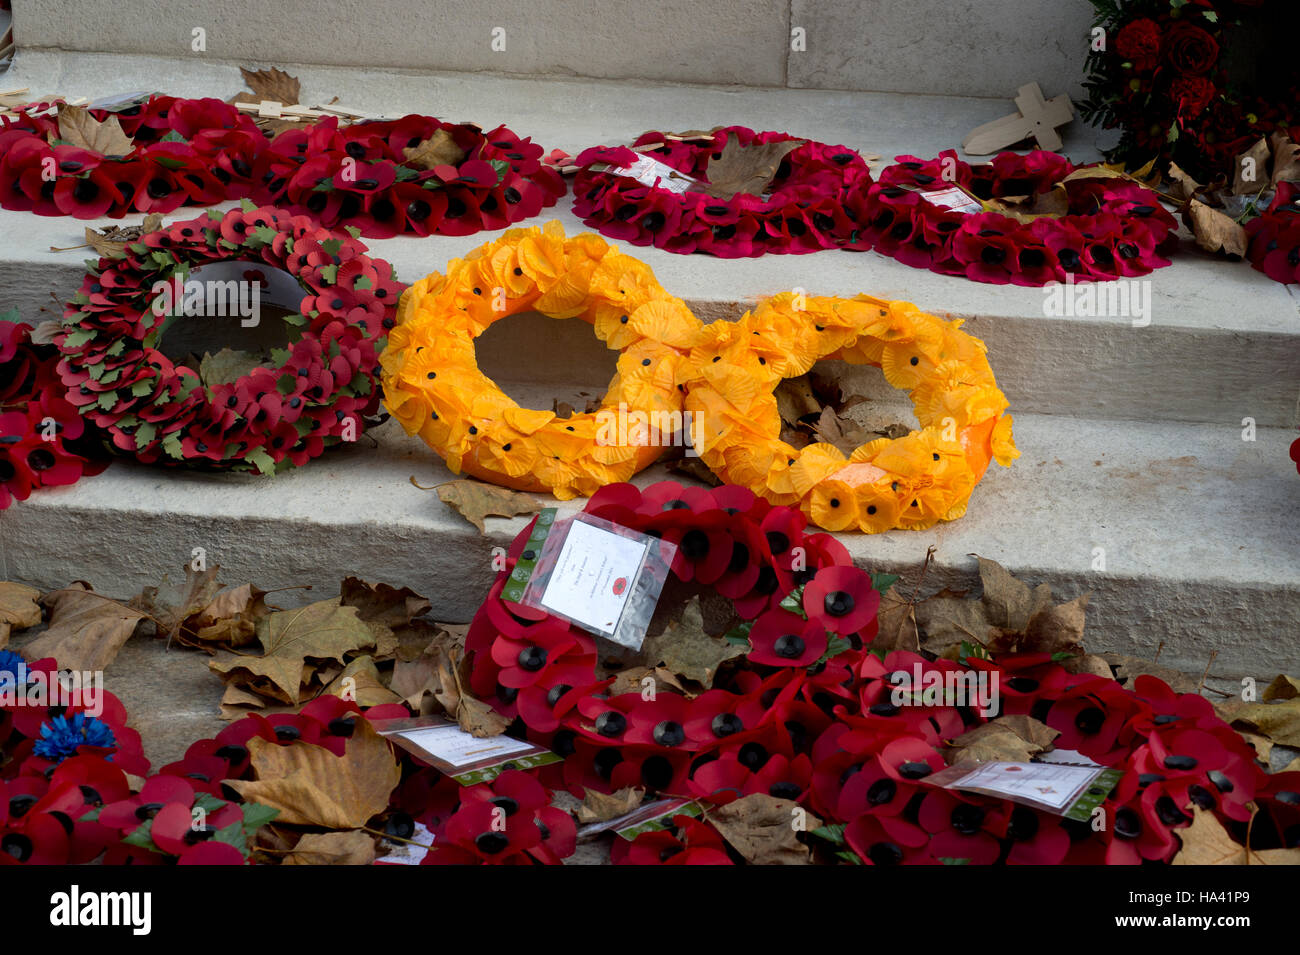 Remembrance Day at the Cenotaph. Two orange poppy wreaths amongst red ones. - Stock Image